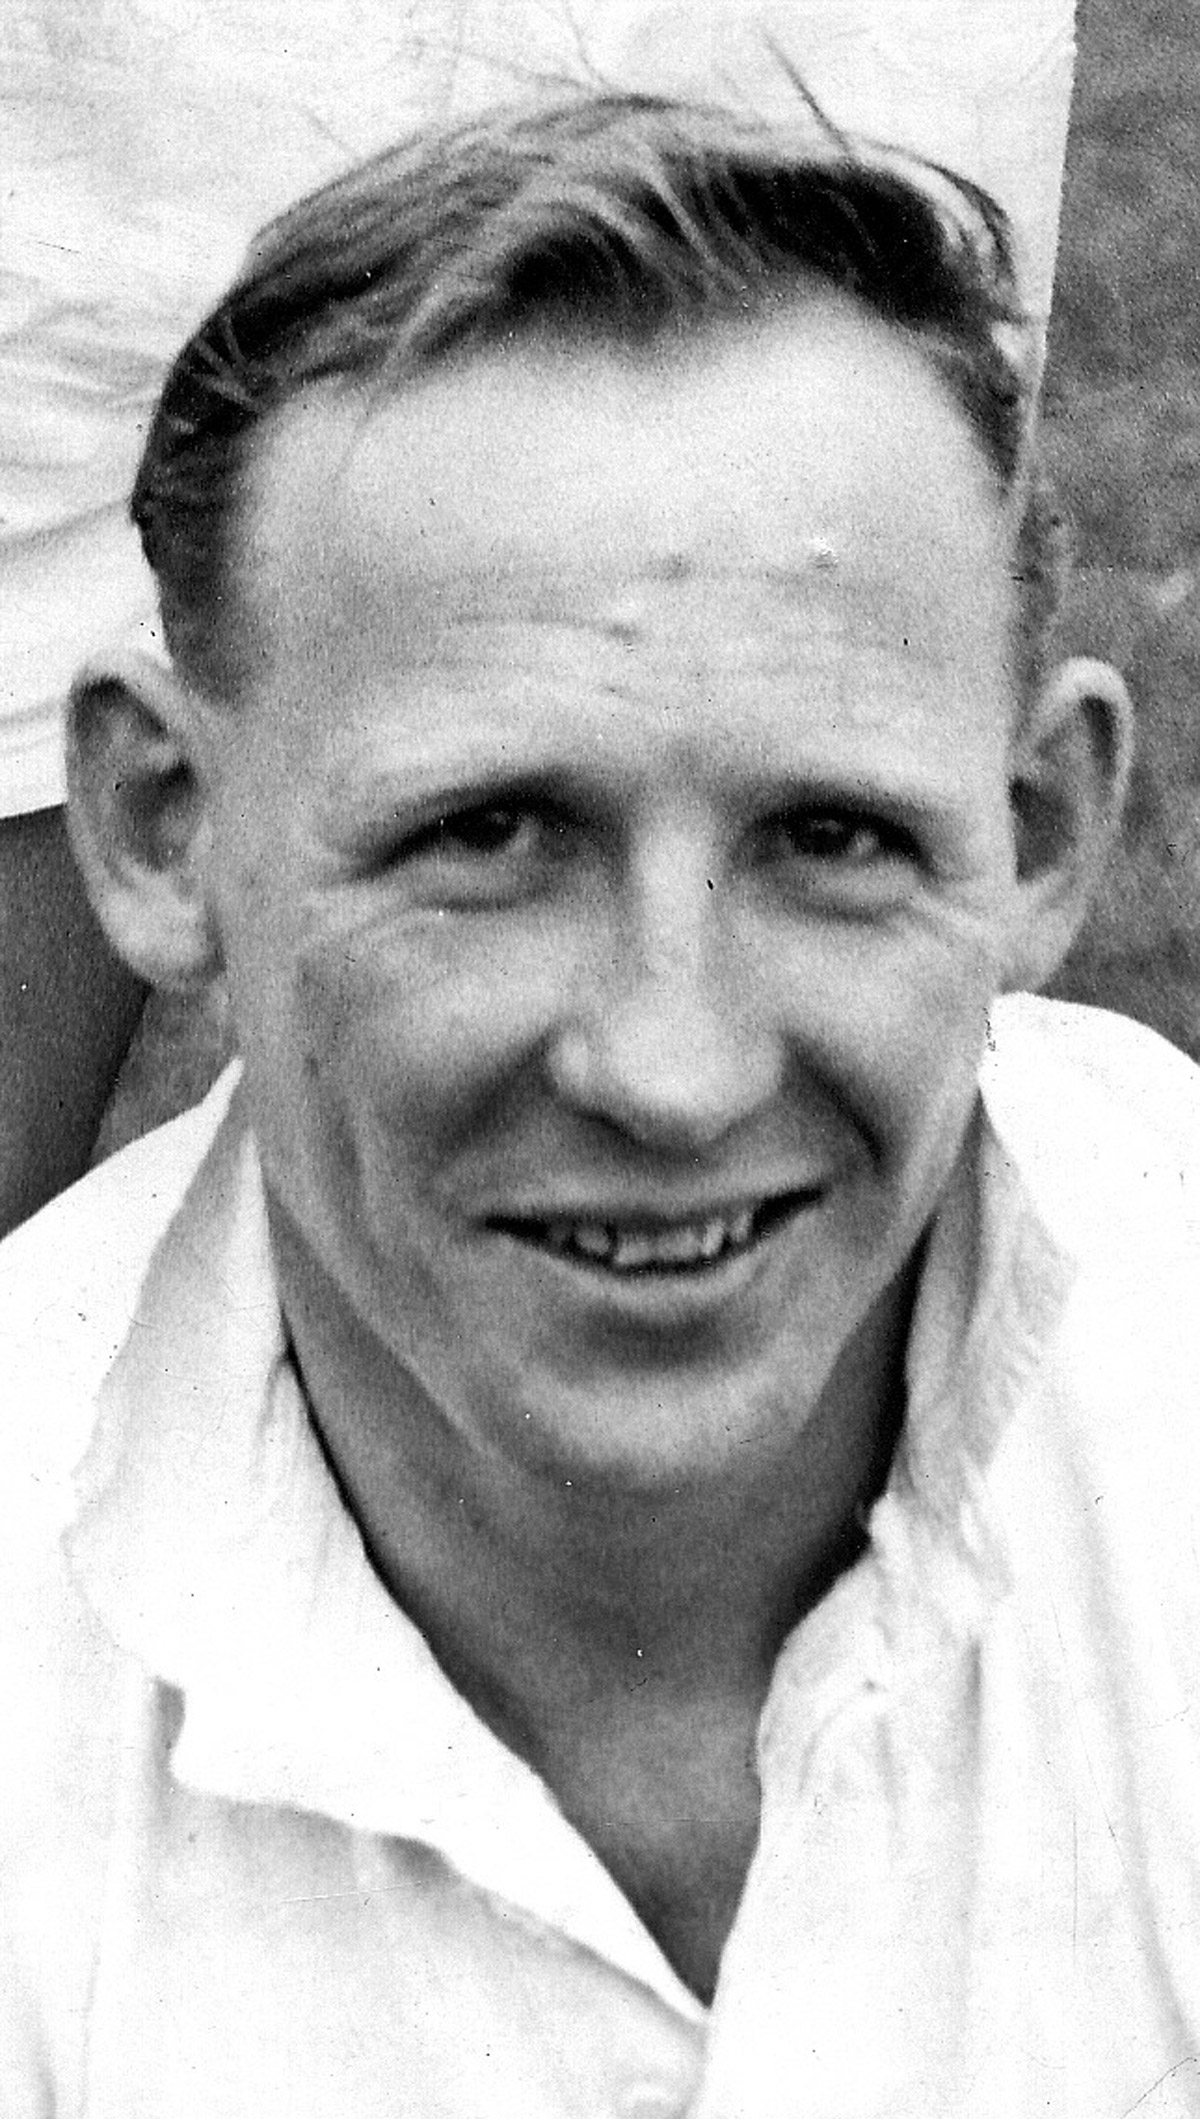 Willie Hargreaves pictured during his playing days in 1962